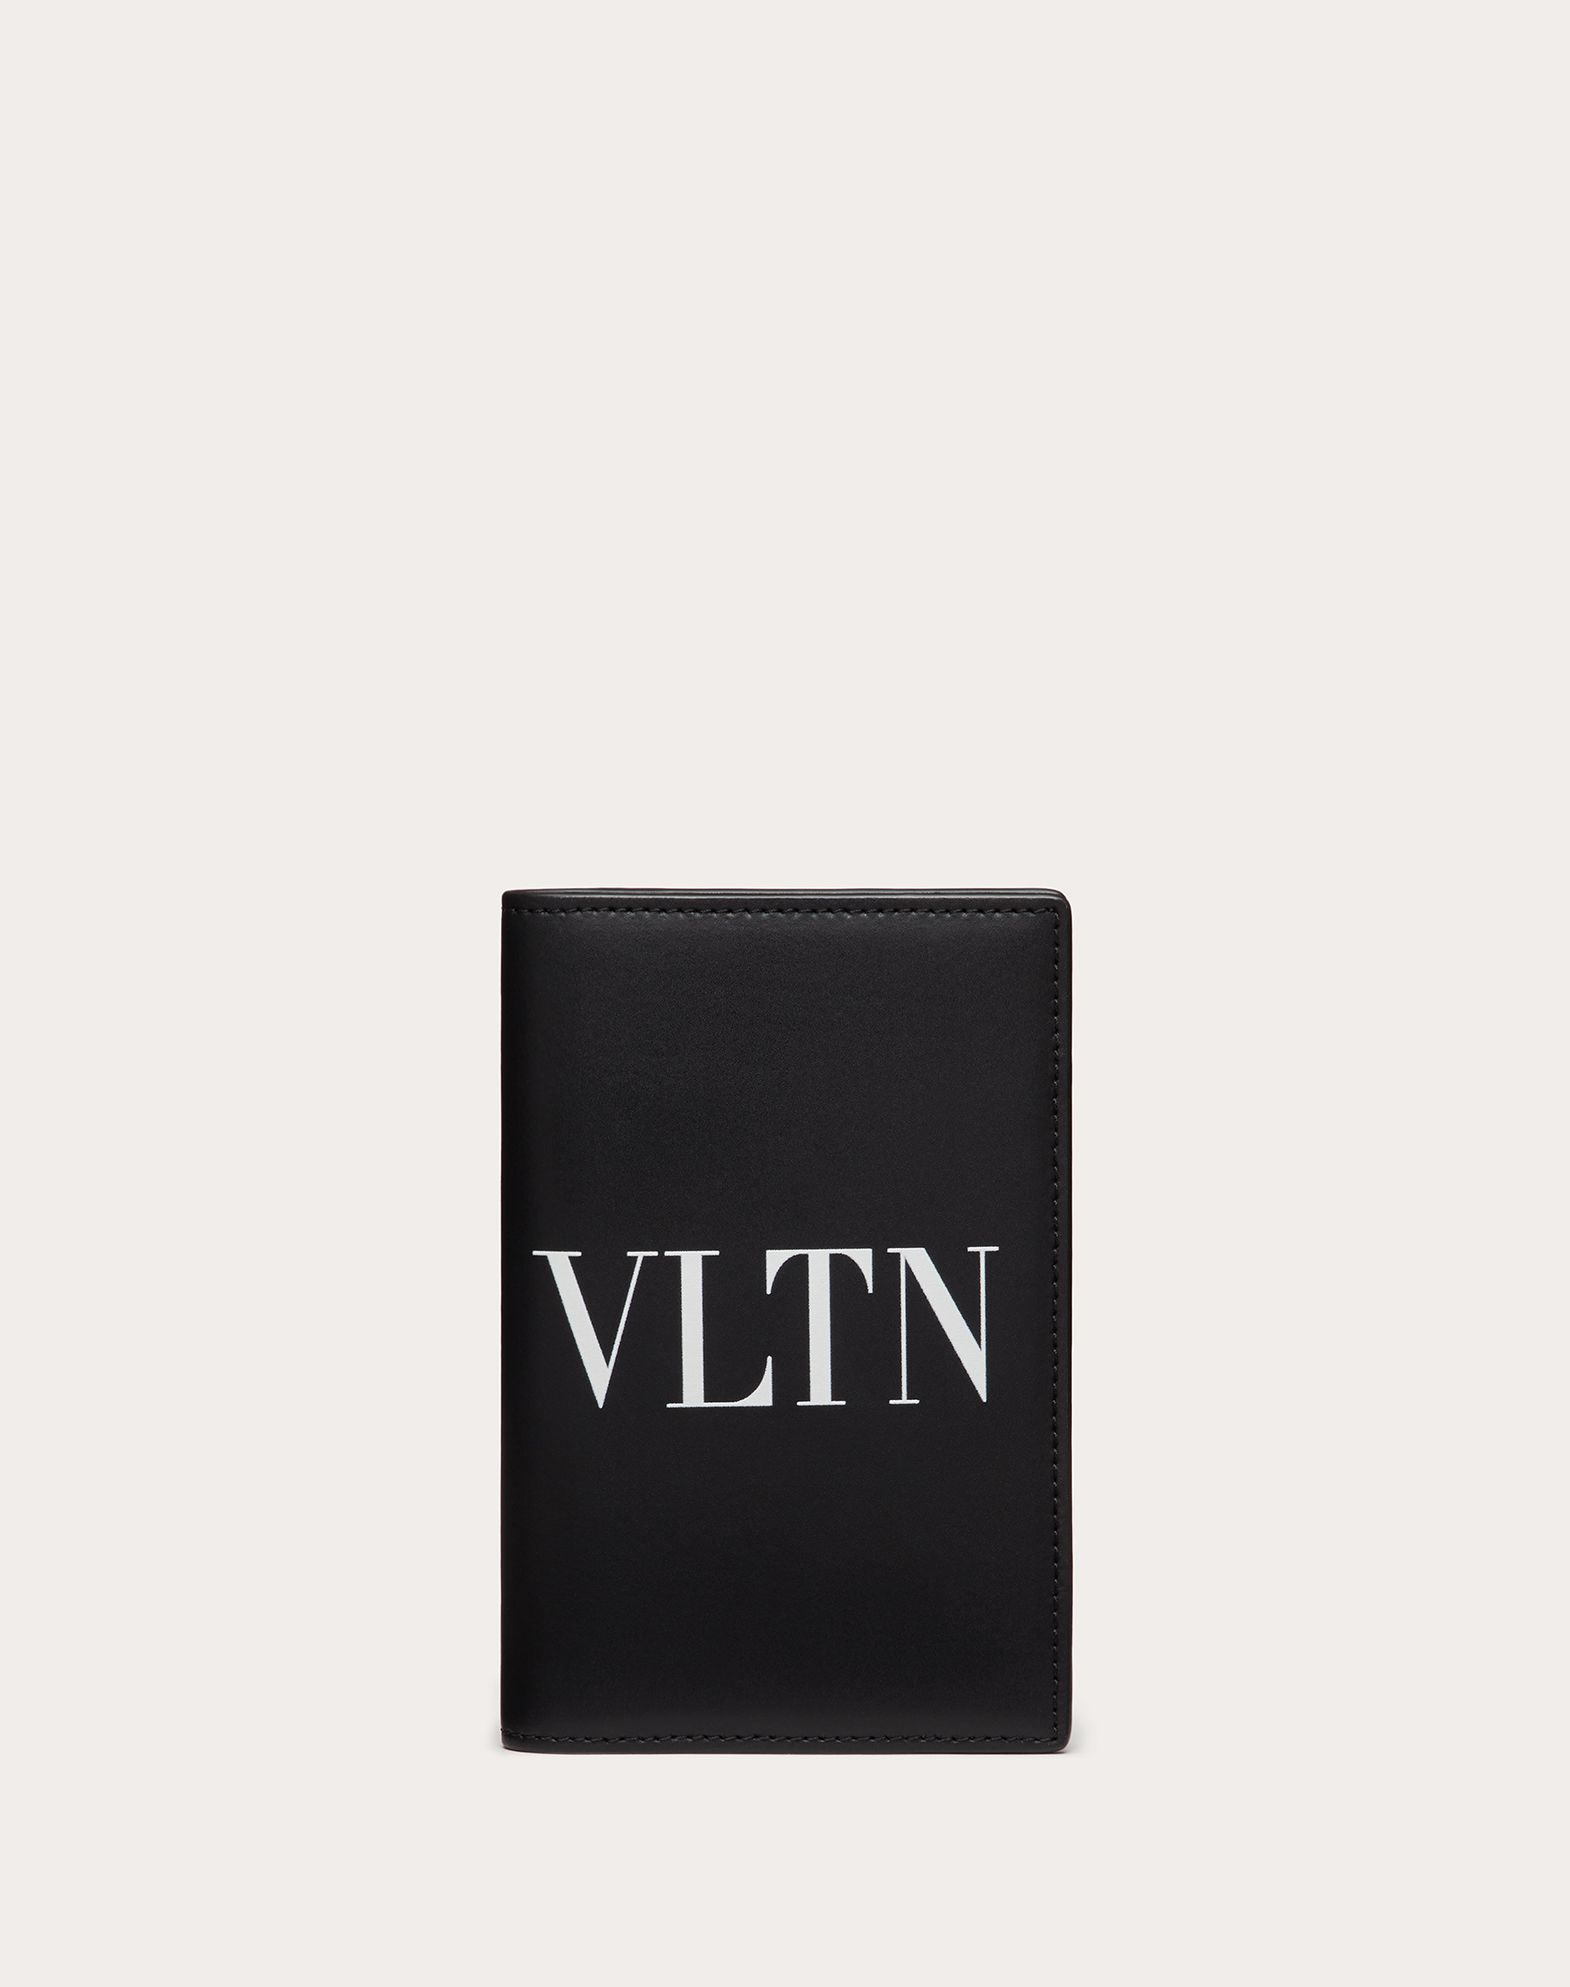 VLTN Passport Cover